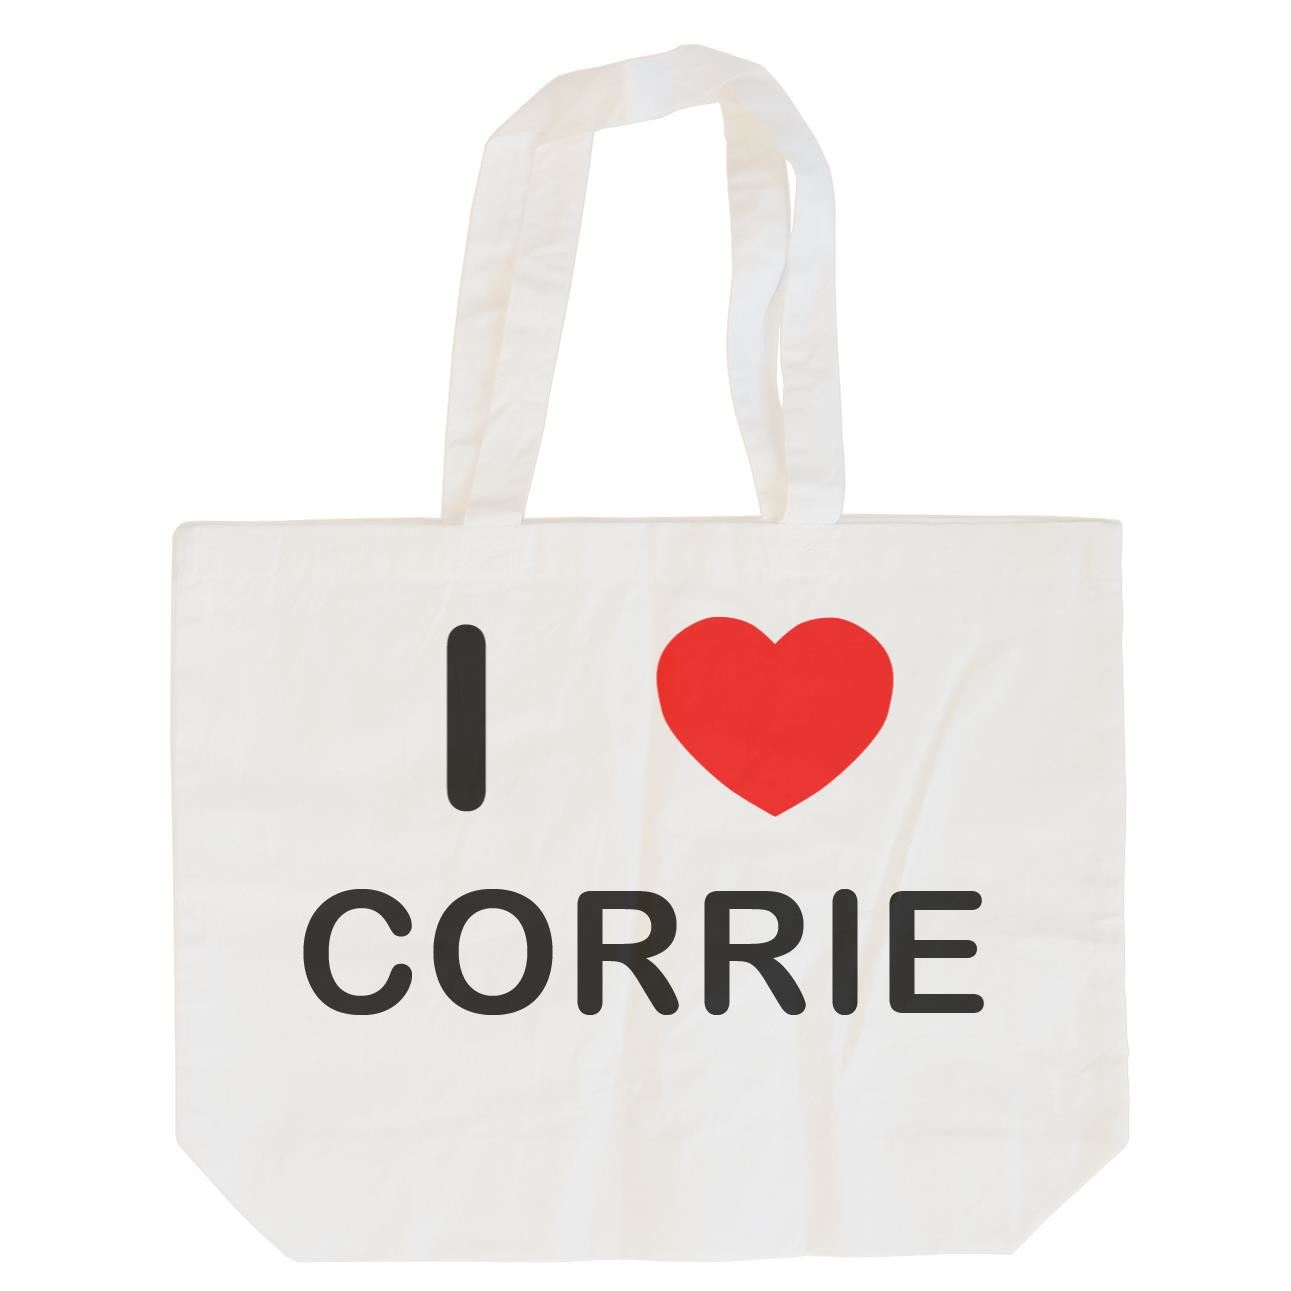 I Love Corrie - Cotton Bag | Size choice Tote, Shopper or Sling